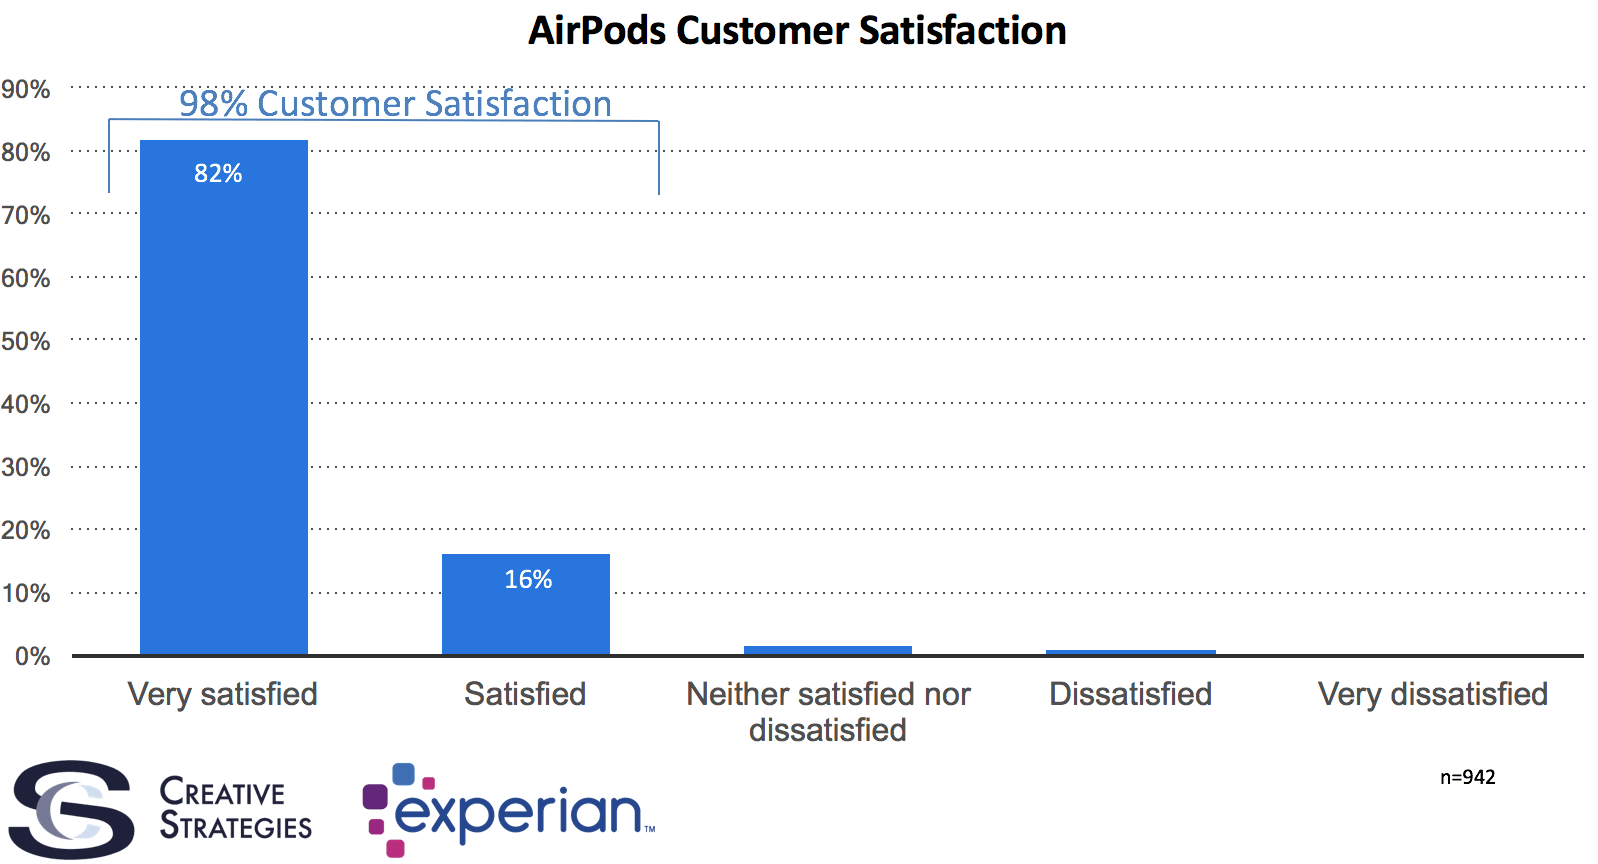 AirPods satisfaction